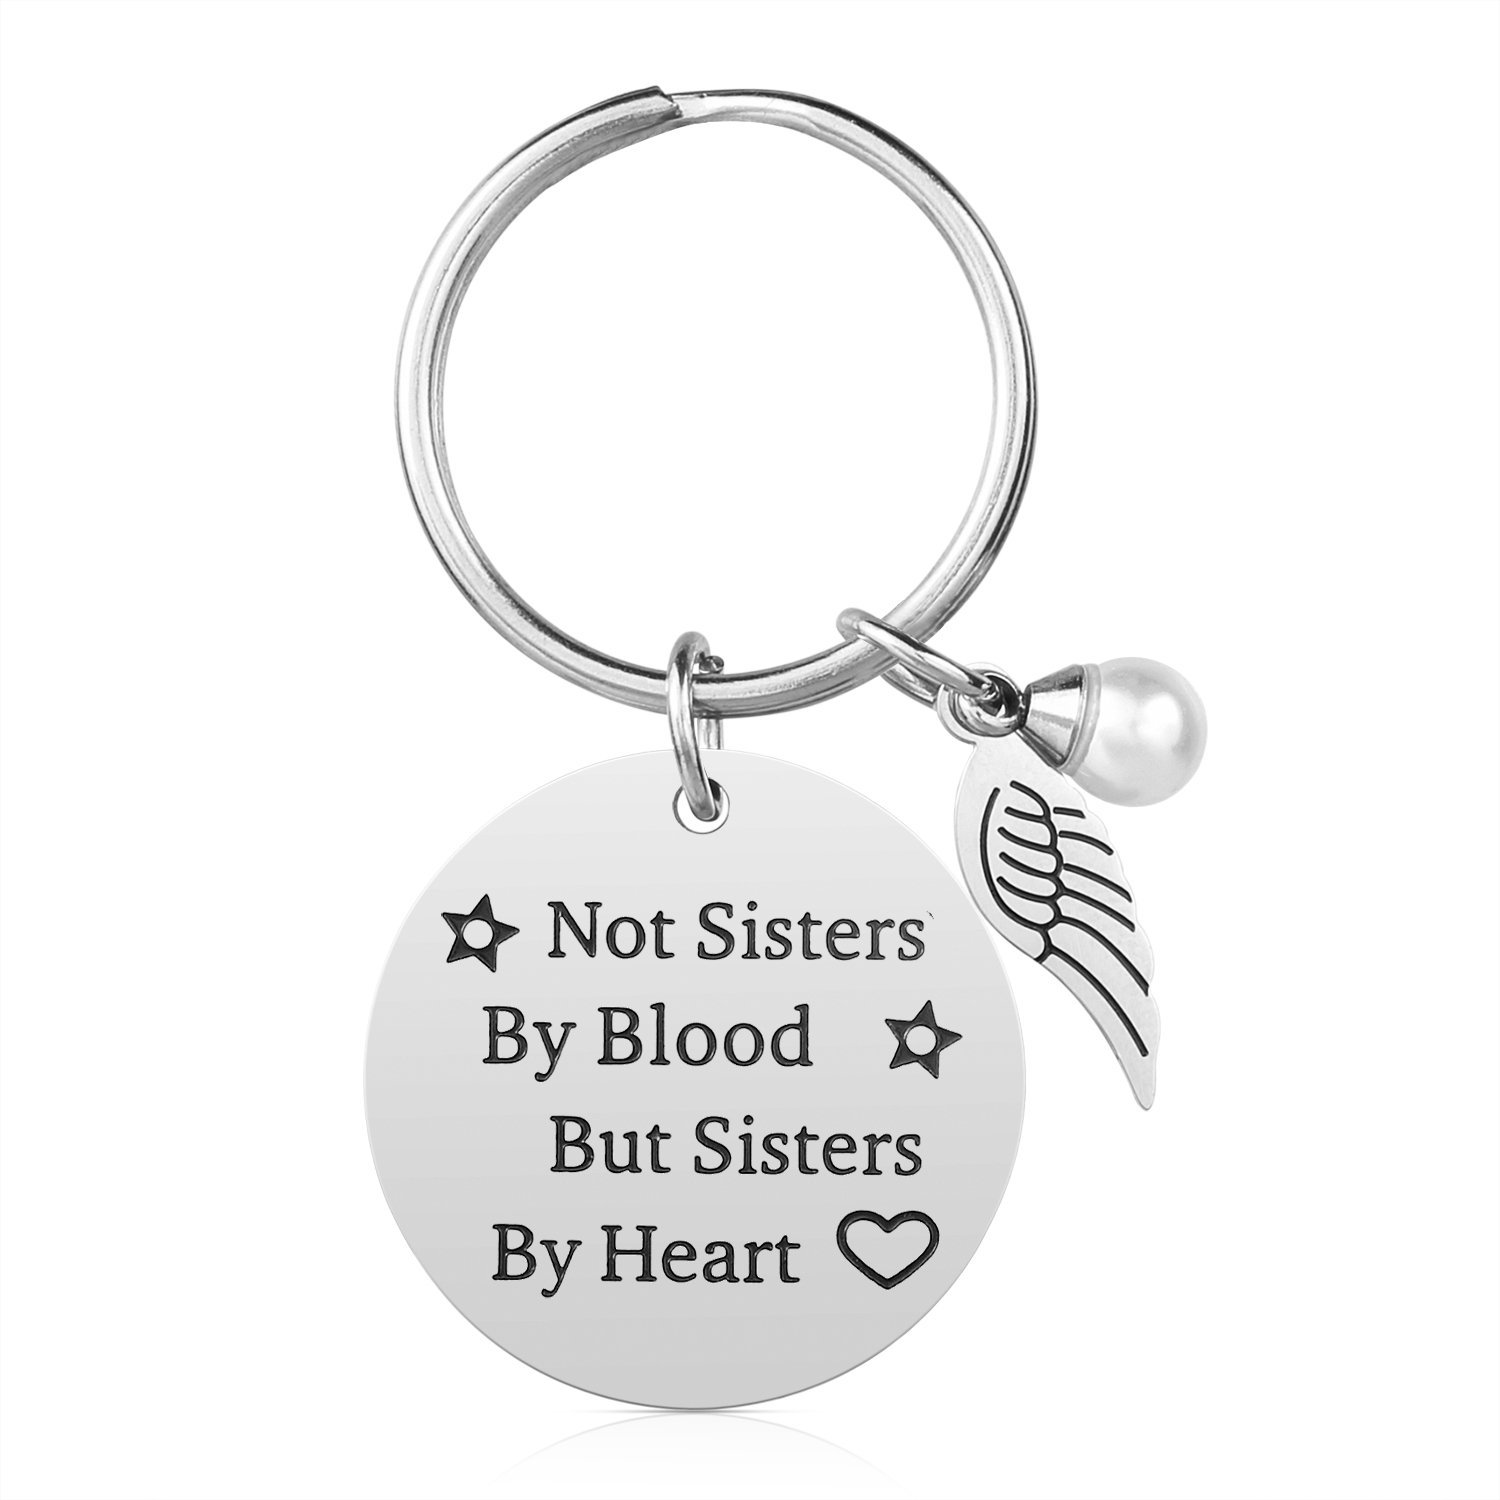 Best Friend Gifts Keychain - Perfect Friendship Gift Ideas for Women Teens  Girls Sisters Birthday Gifts d1c19e2e59